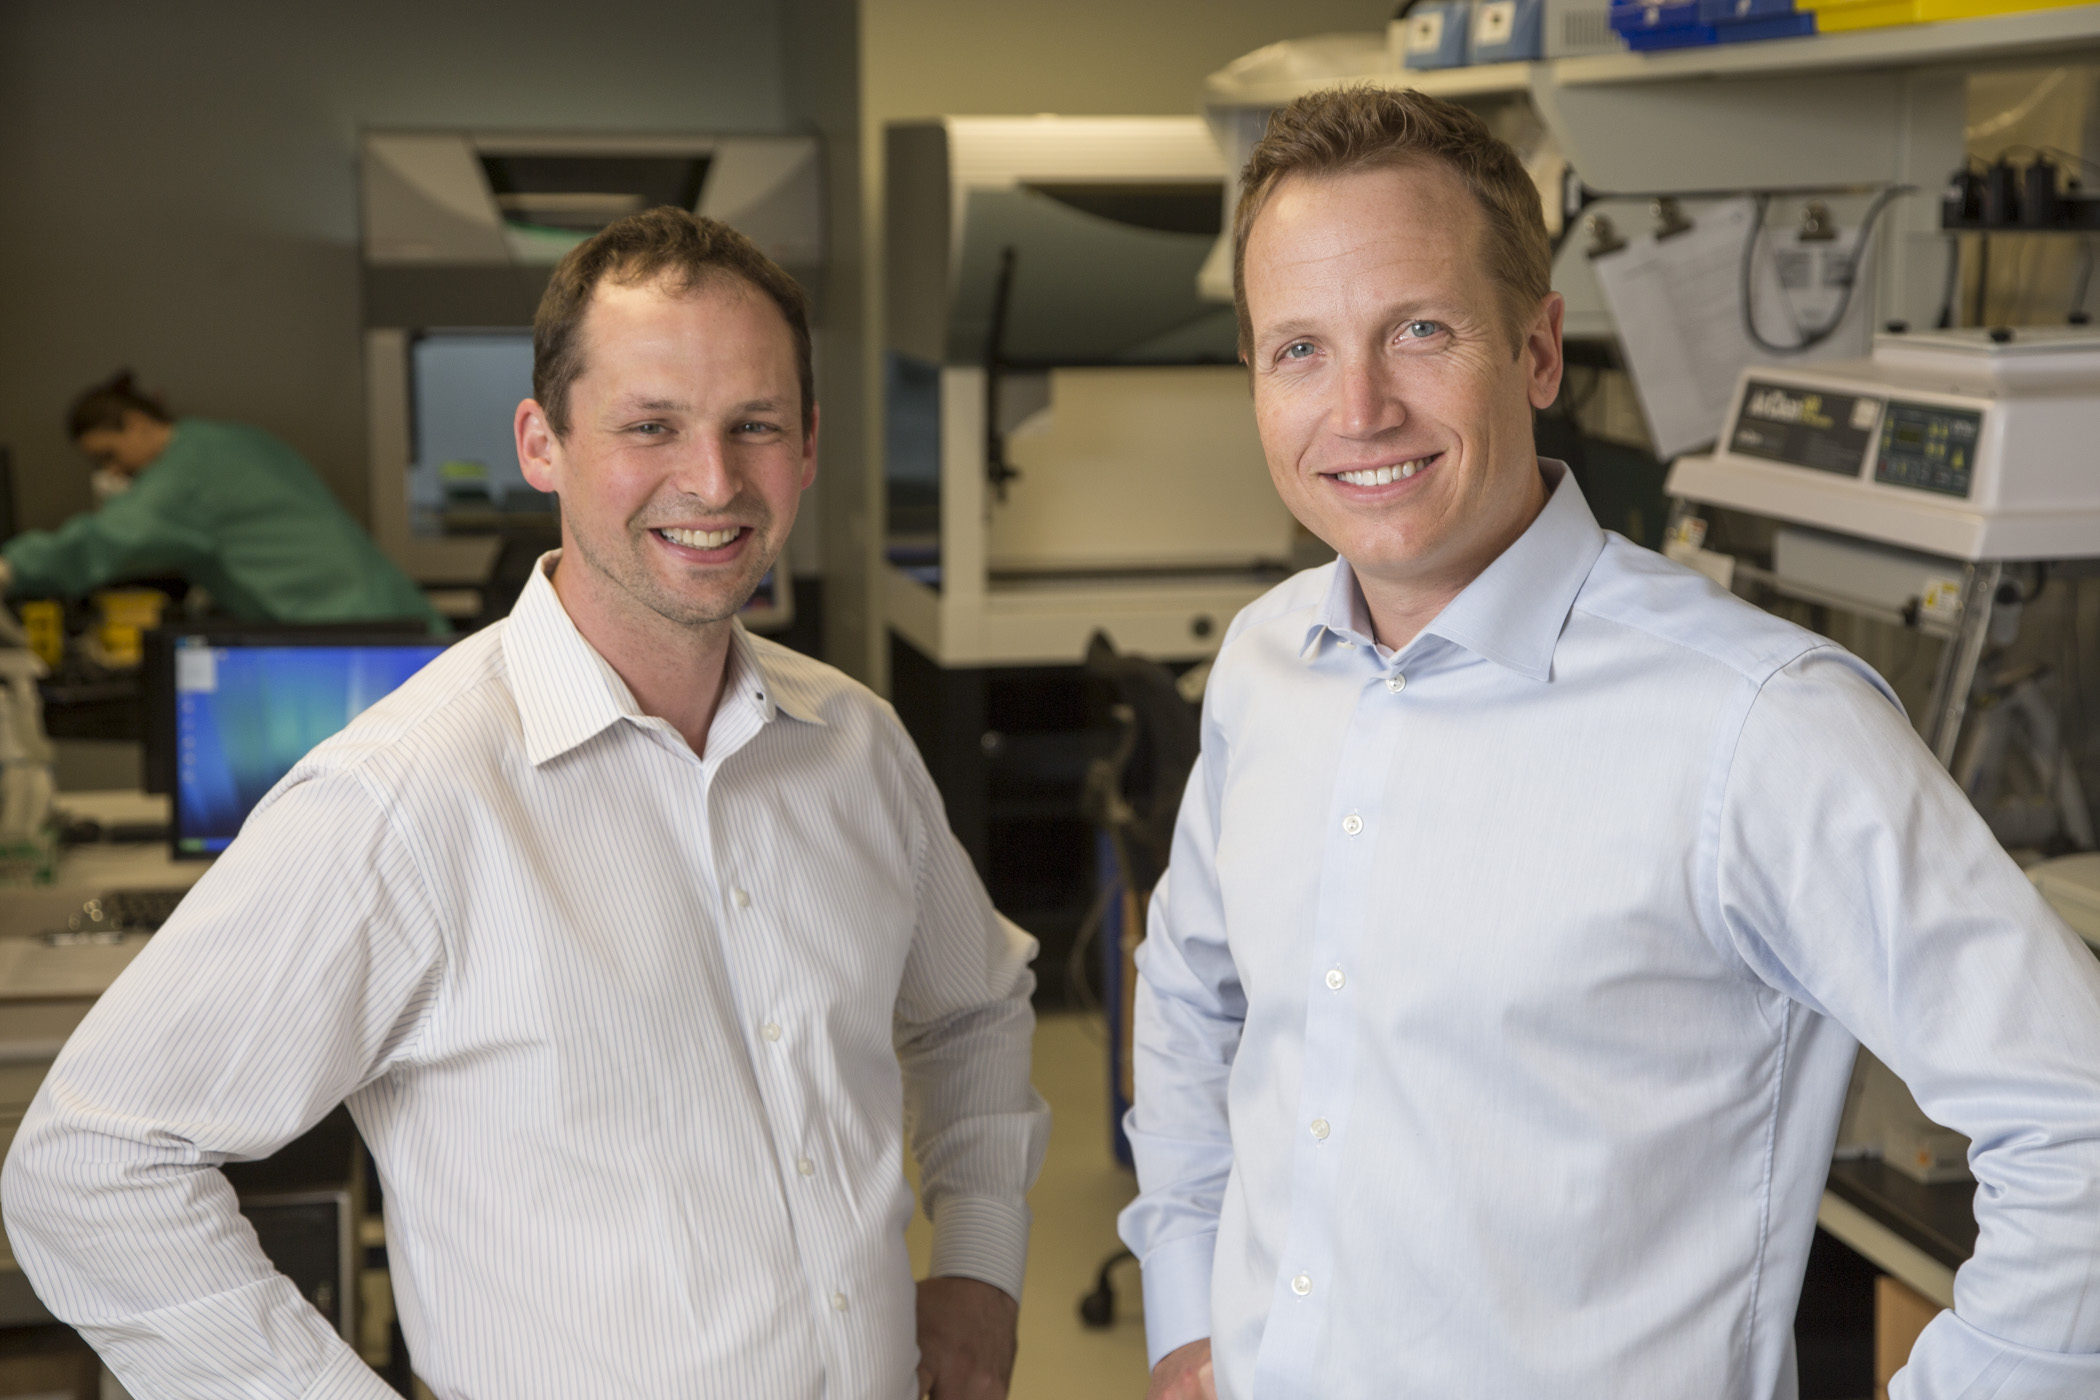 Co-founders Scott Tomlins, MD, PhD and Dan Rhodes, PhD